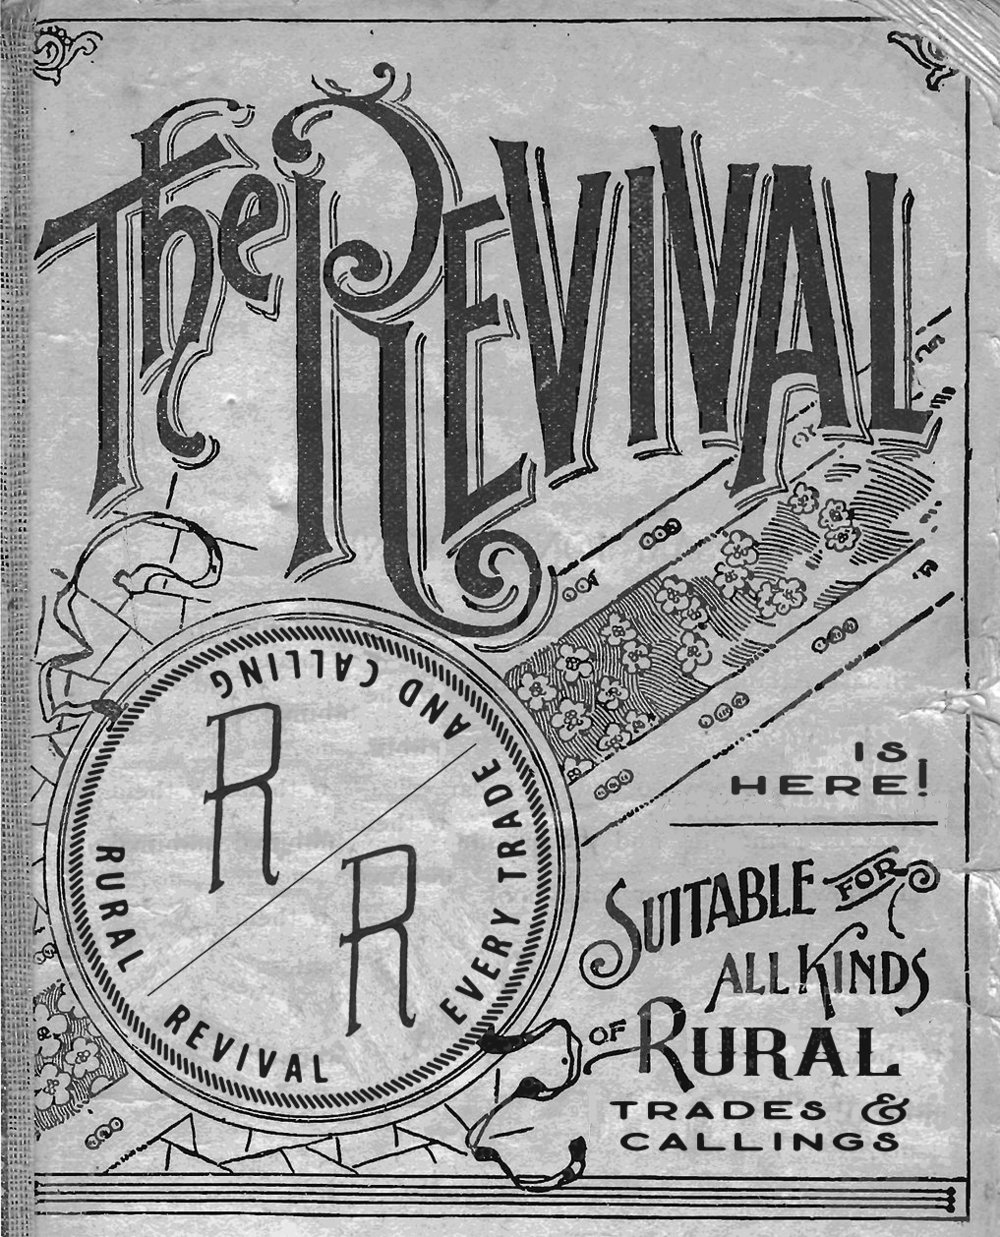 design for rural revival